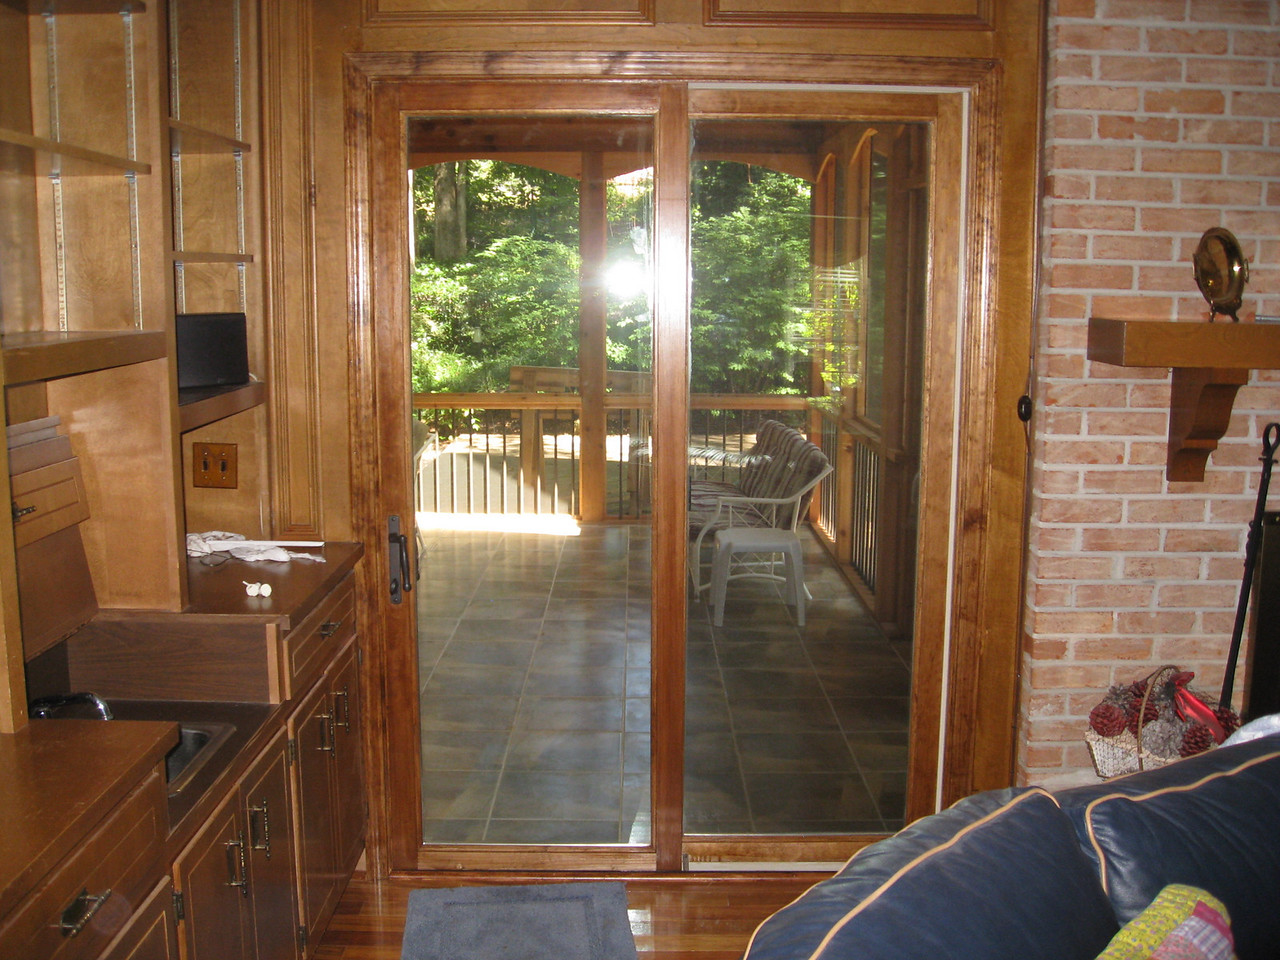 AFTER WITH NEW SLIDING DOOR